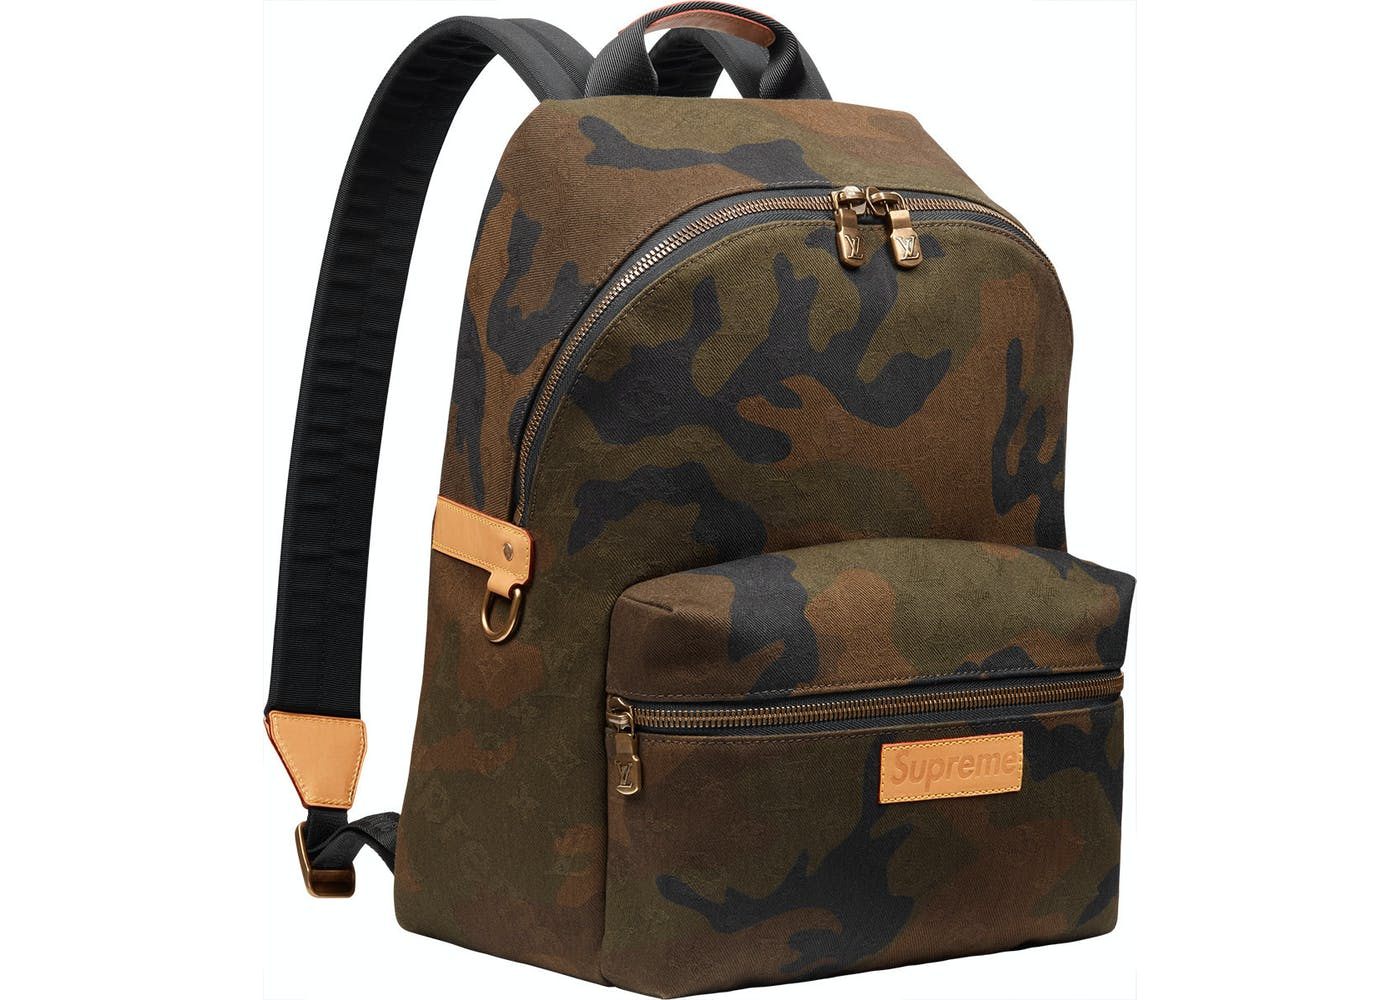 louis vuitton x supreme apollo backpack monogram camo. Black Bedroom Furniture Sets. Home Design Ideas